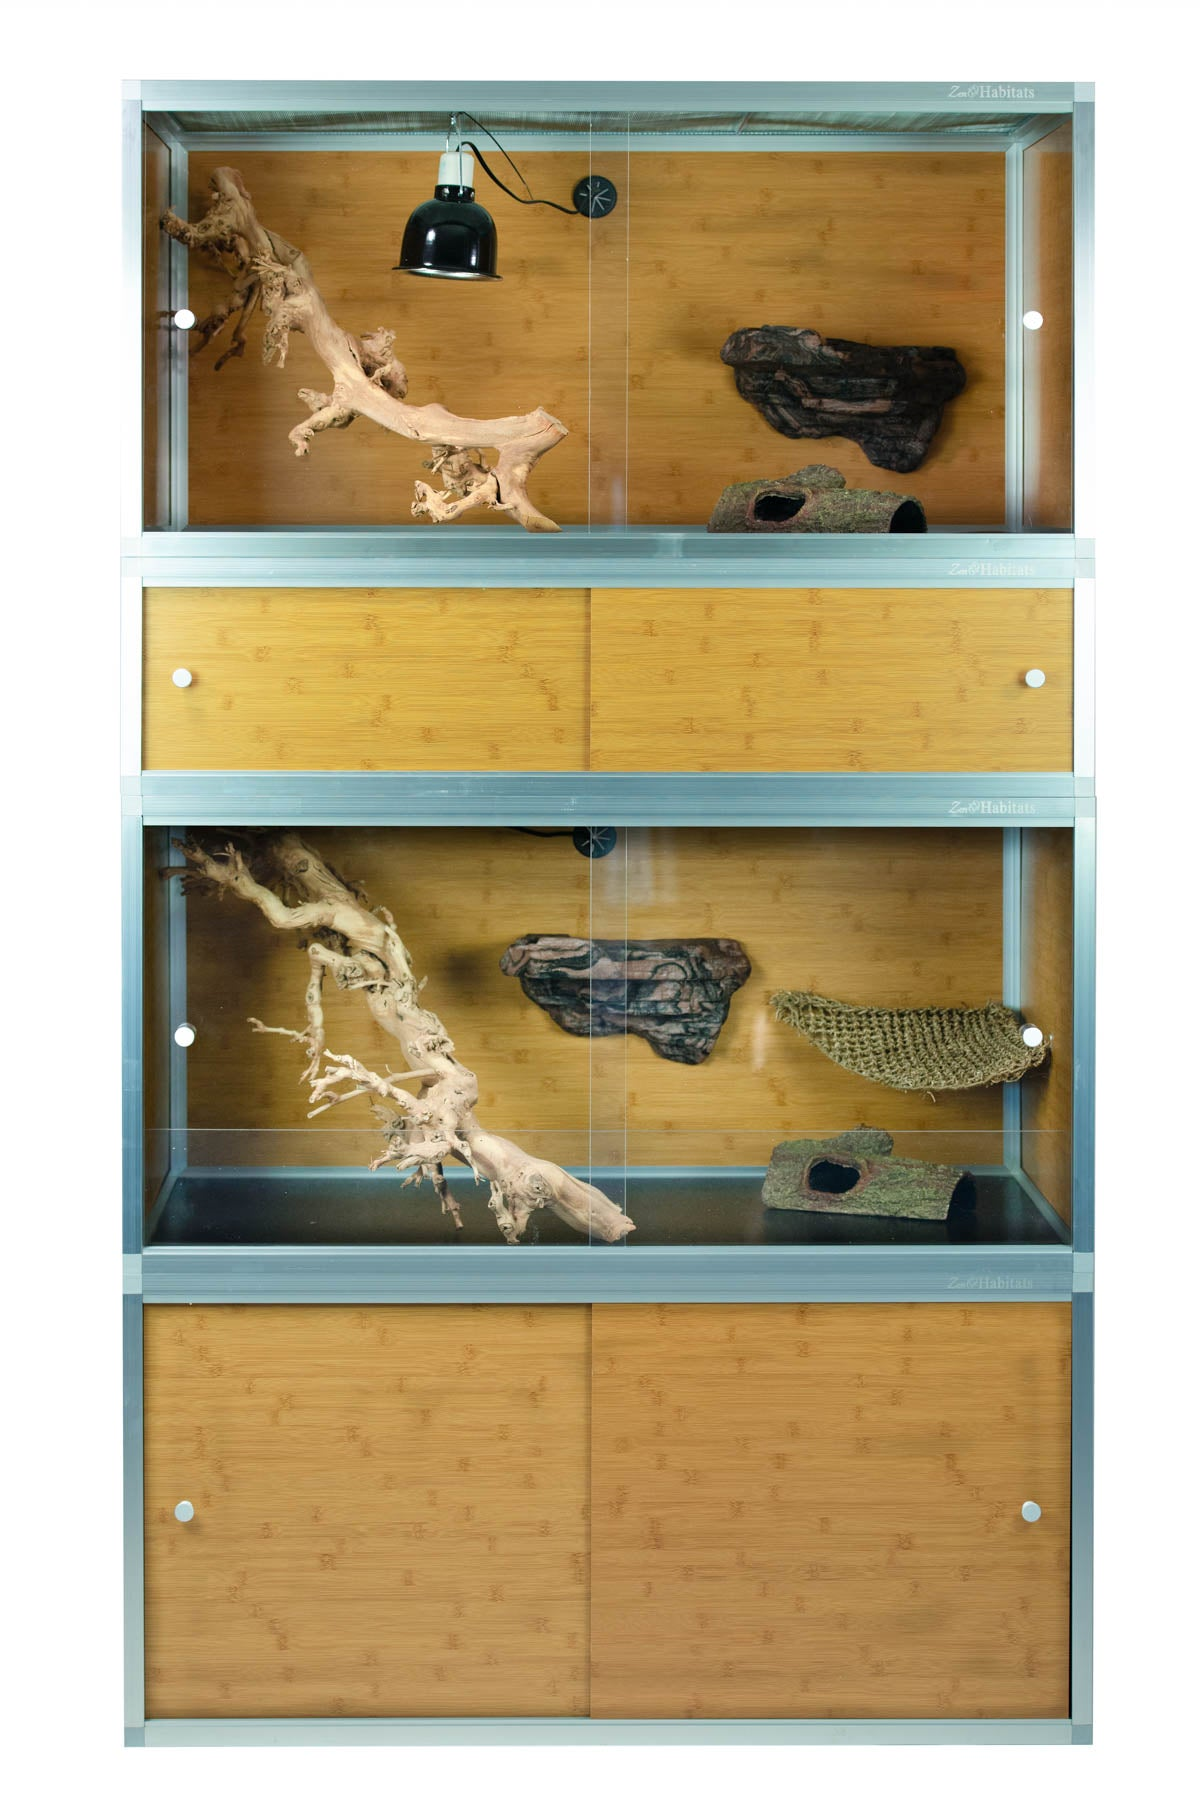 4'x2'x2' Zen Habitats Reptile Enclosures with Substrate Shield